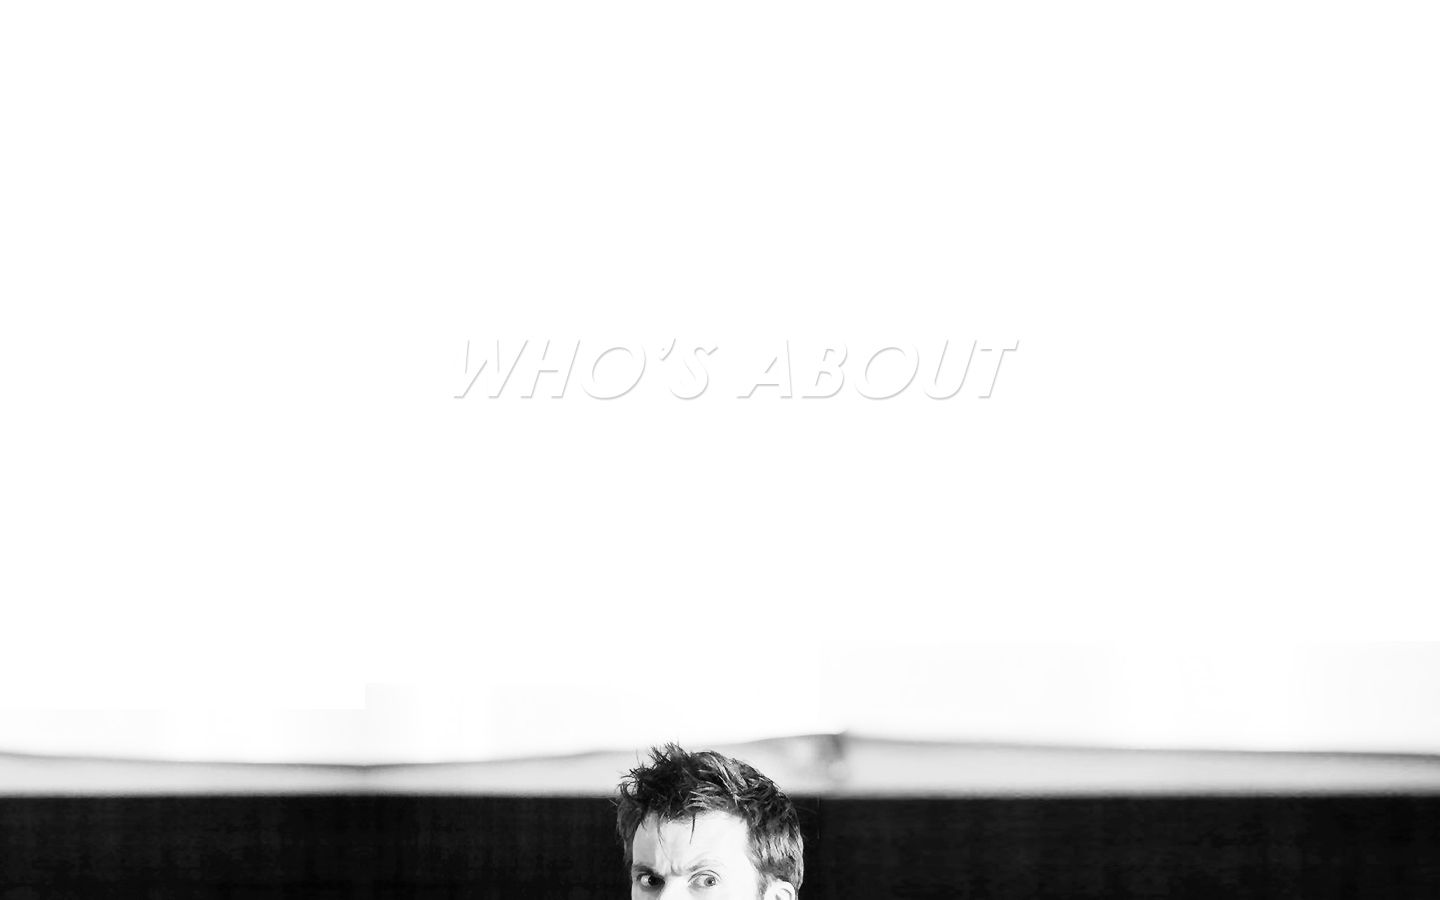 Doctor Who Wallpaper 041